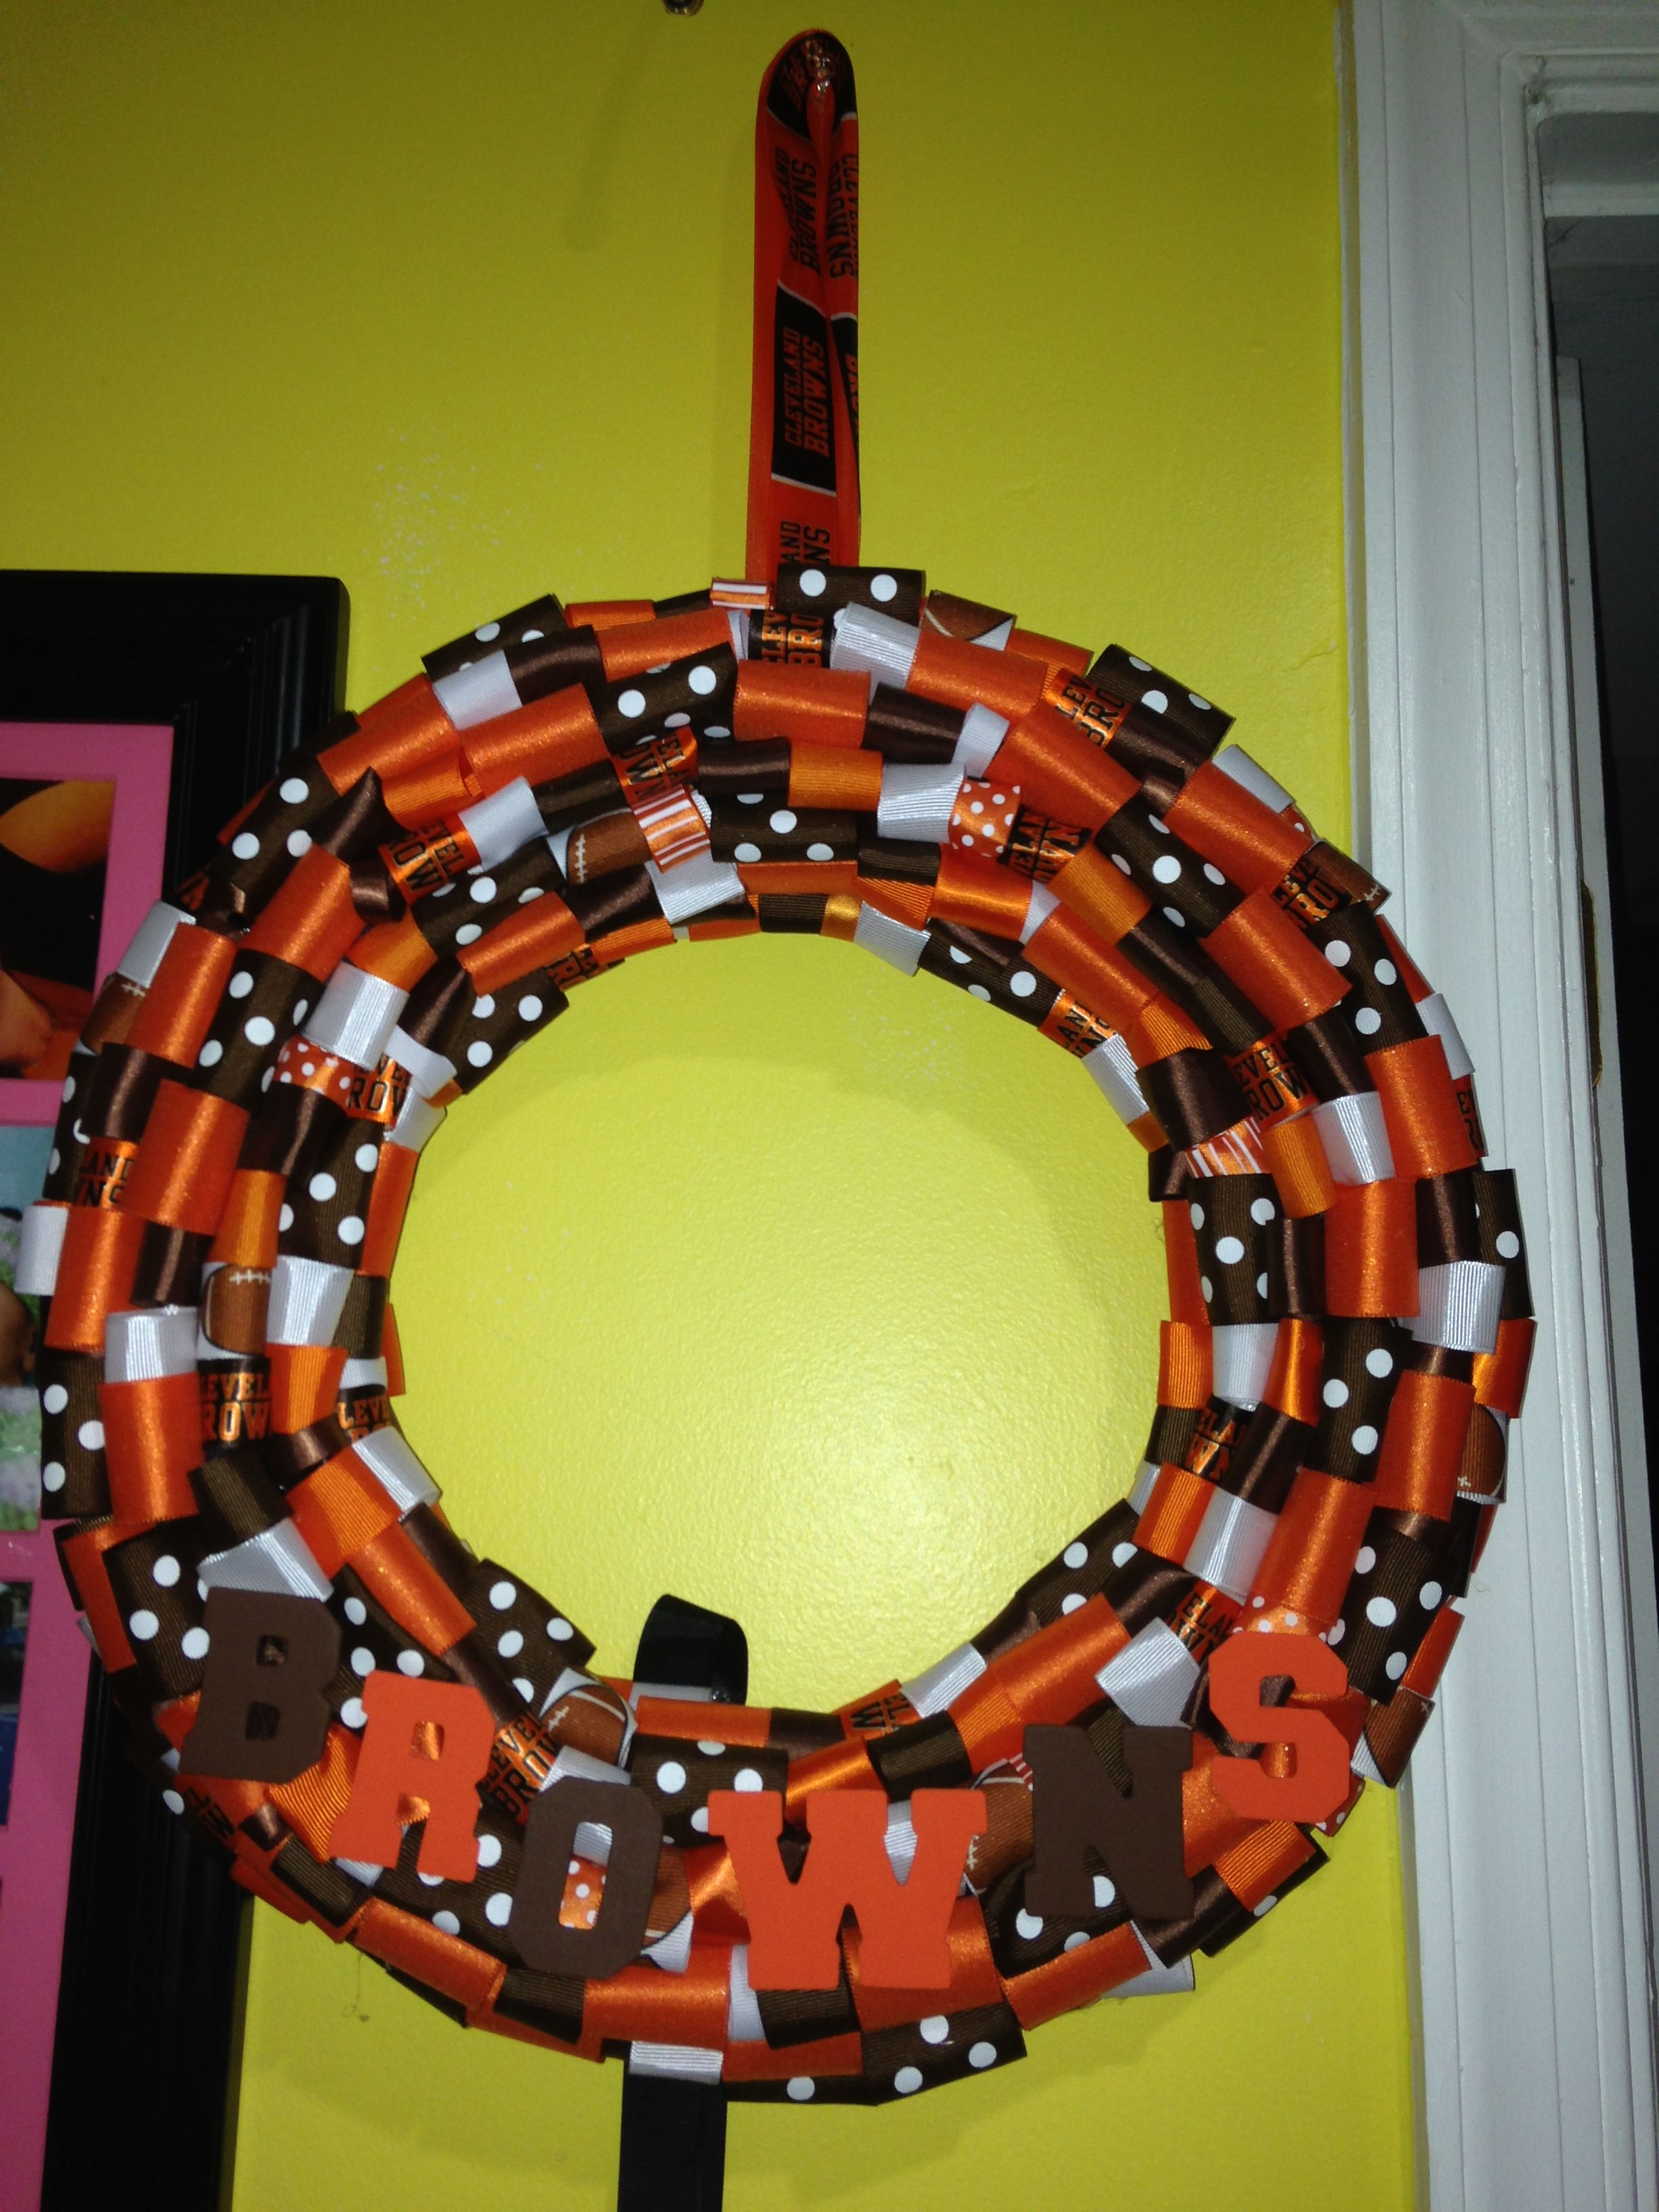 Cleveland Browns 14inch Wreath for 29.99 at